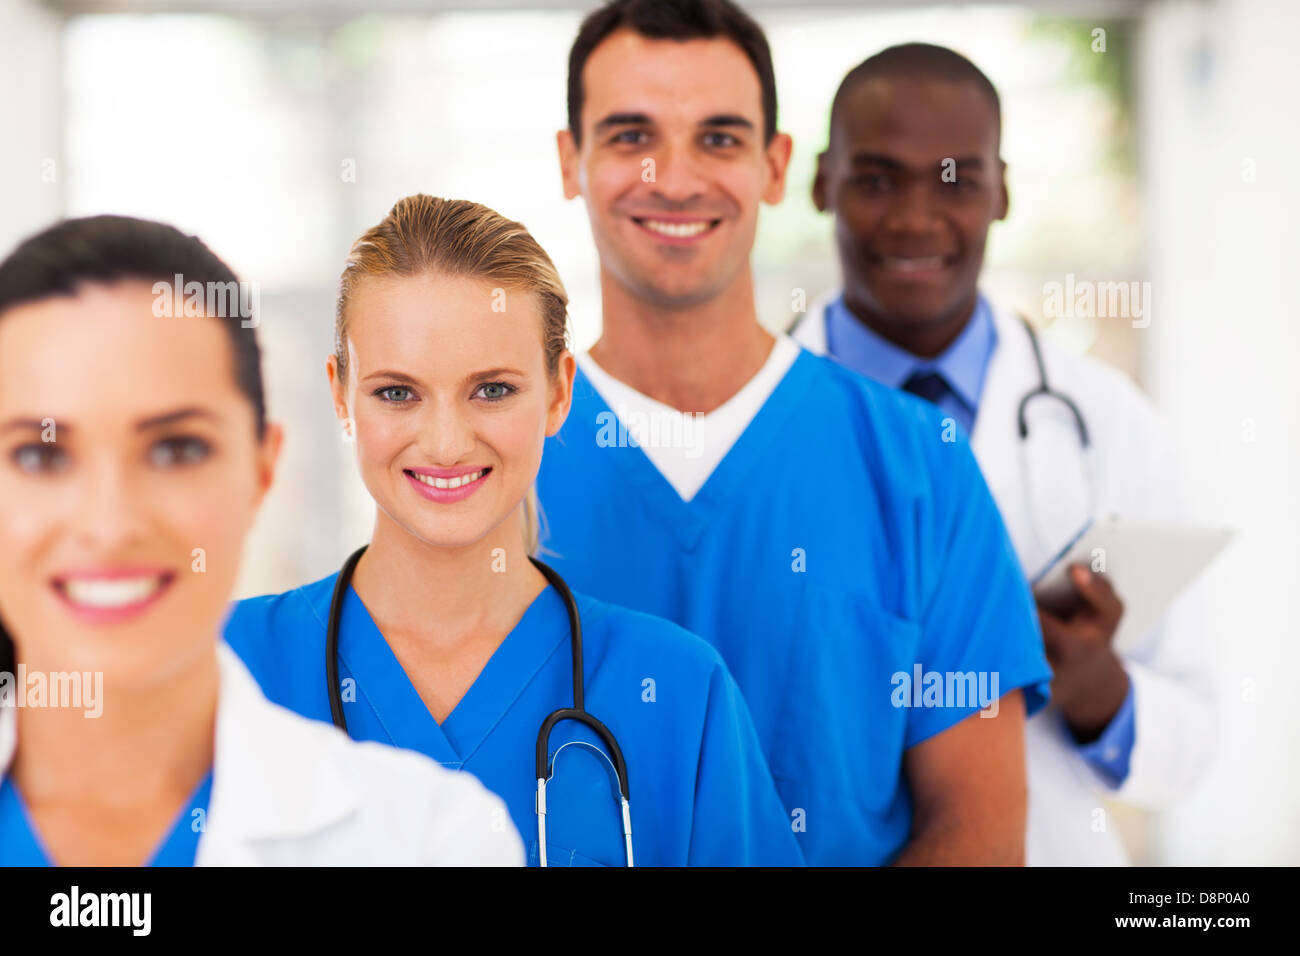 group of medical doctors and nurses portrait - Stock Image